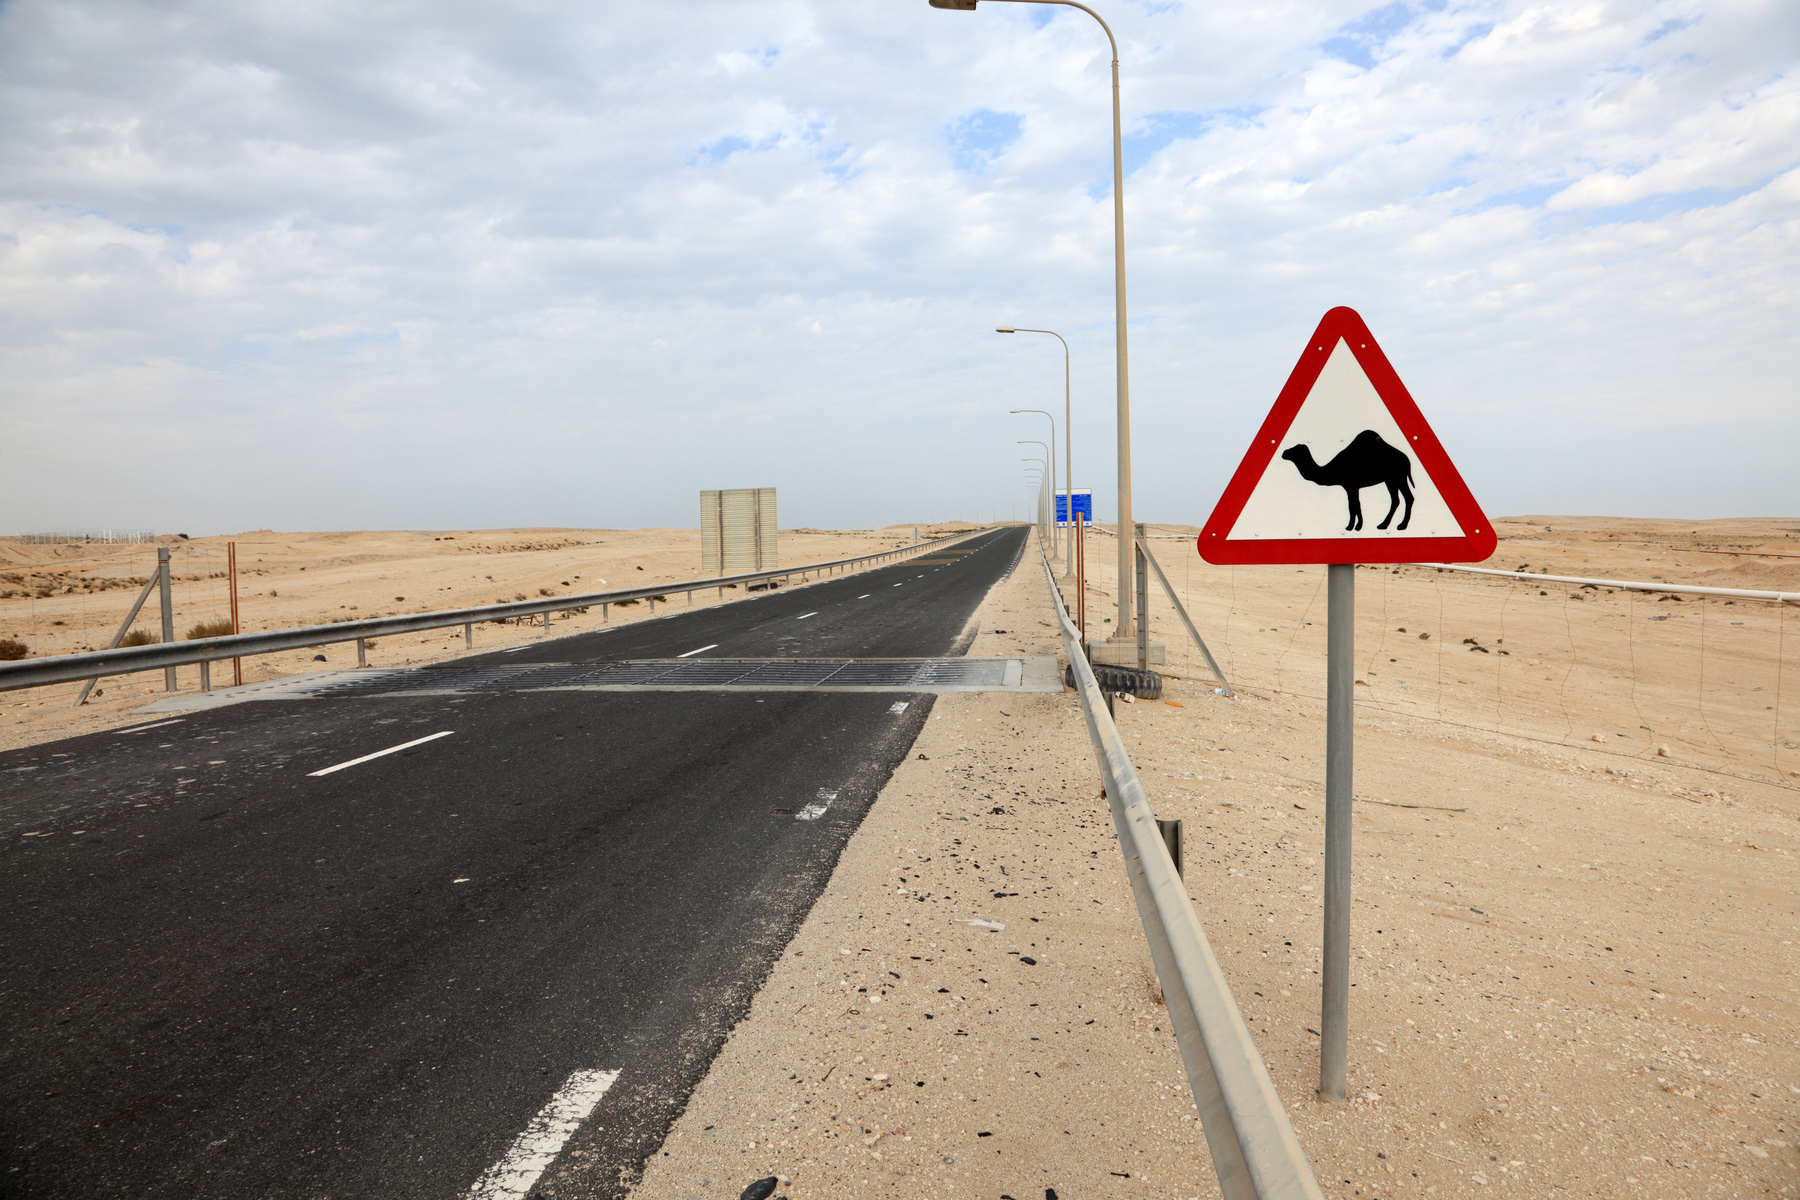 Road sign warning about camels